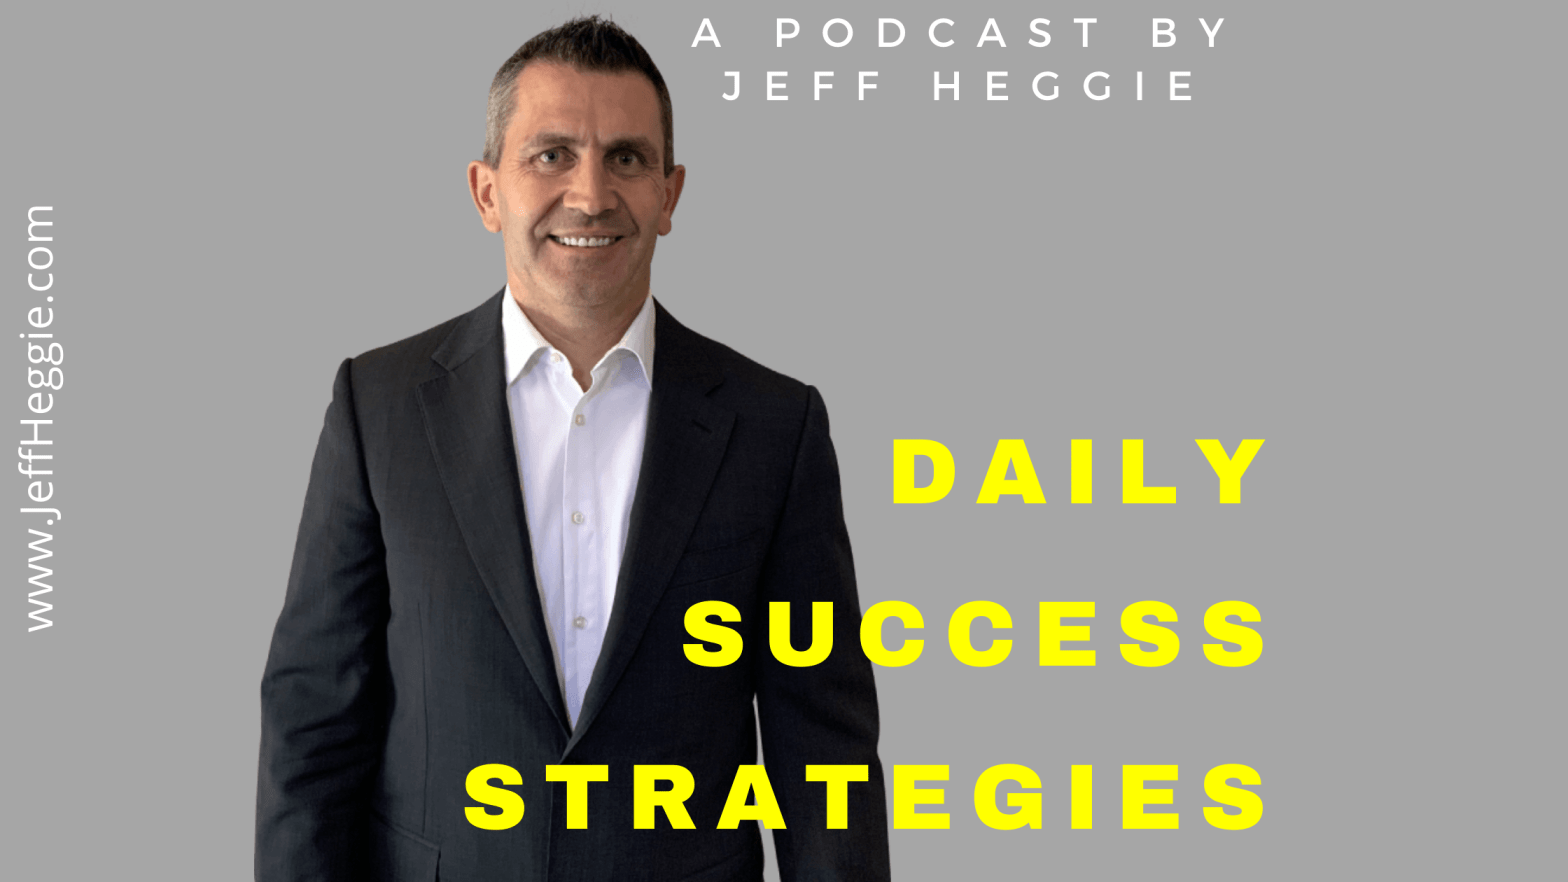 Jeff Heggie Daily Success Strategies Podcast